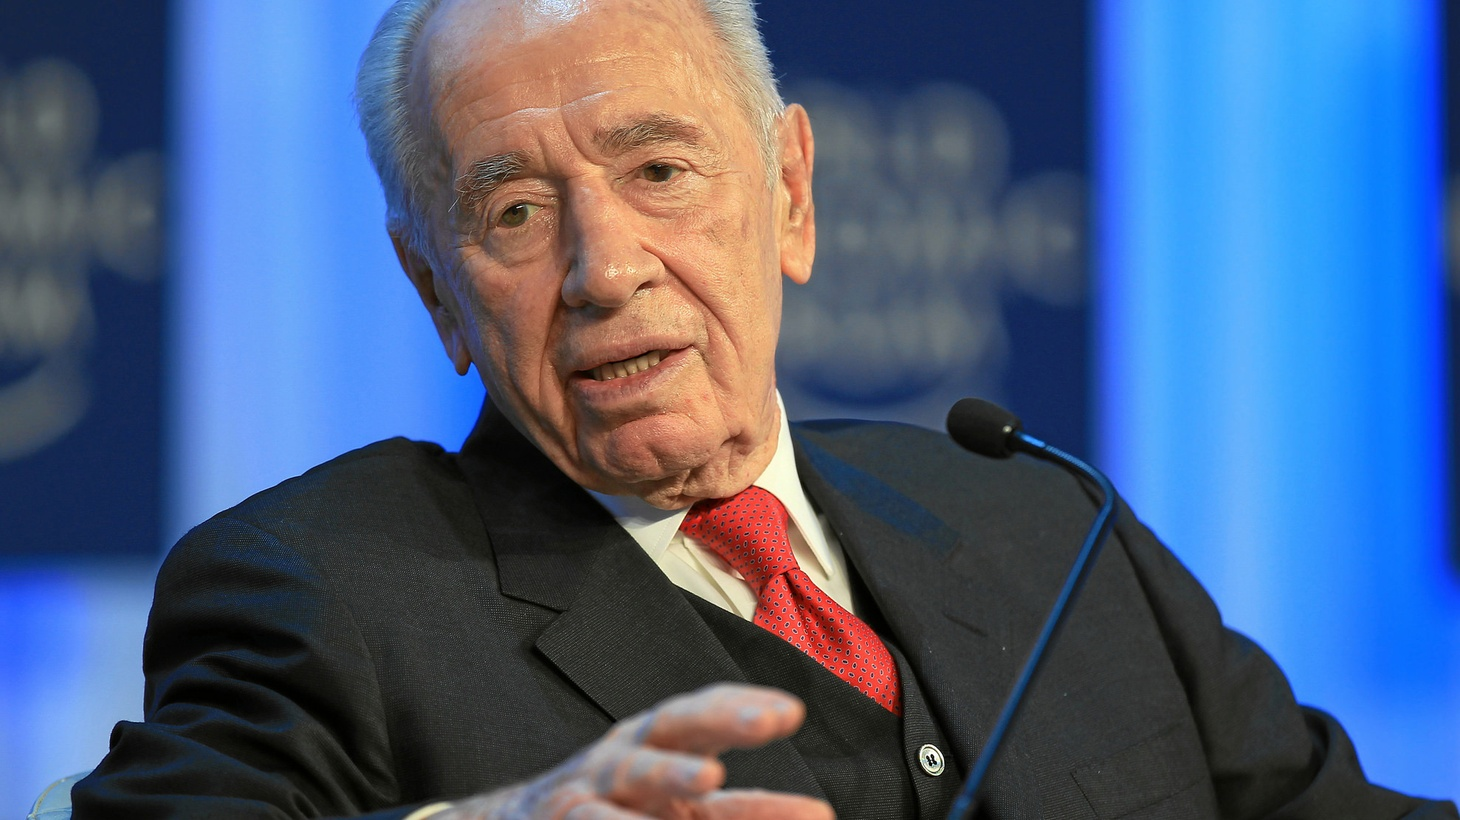 One of the founding fathers of Israel, Shimon Peres, has died at the age of 93. A look at his legacy and the future of Israel.